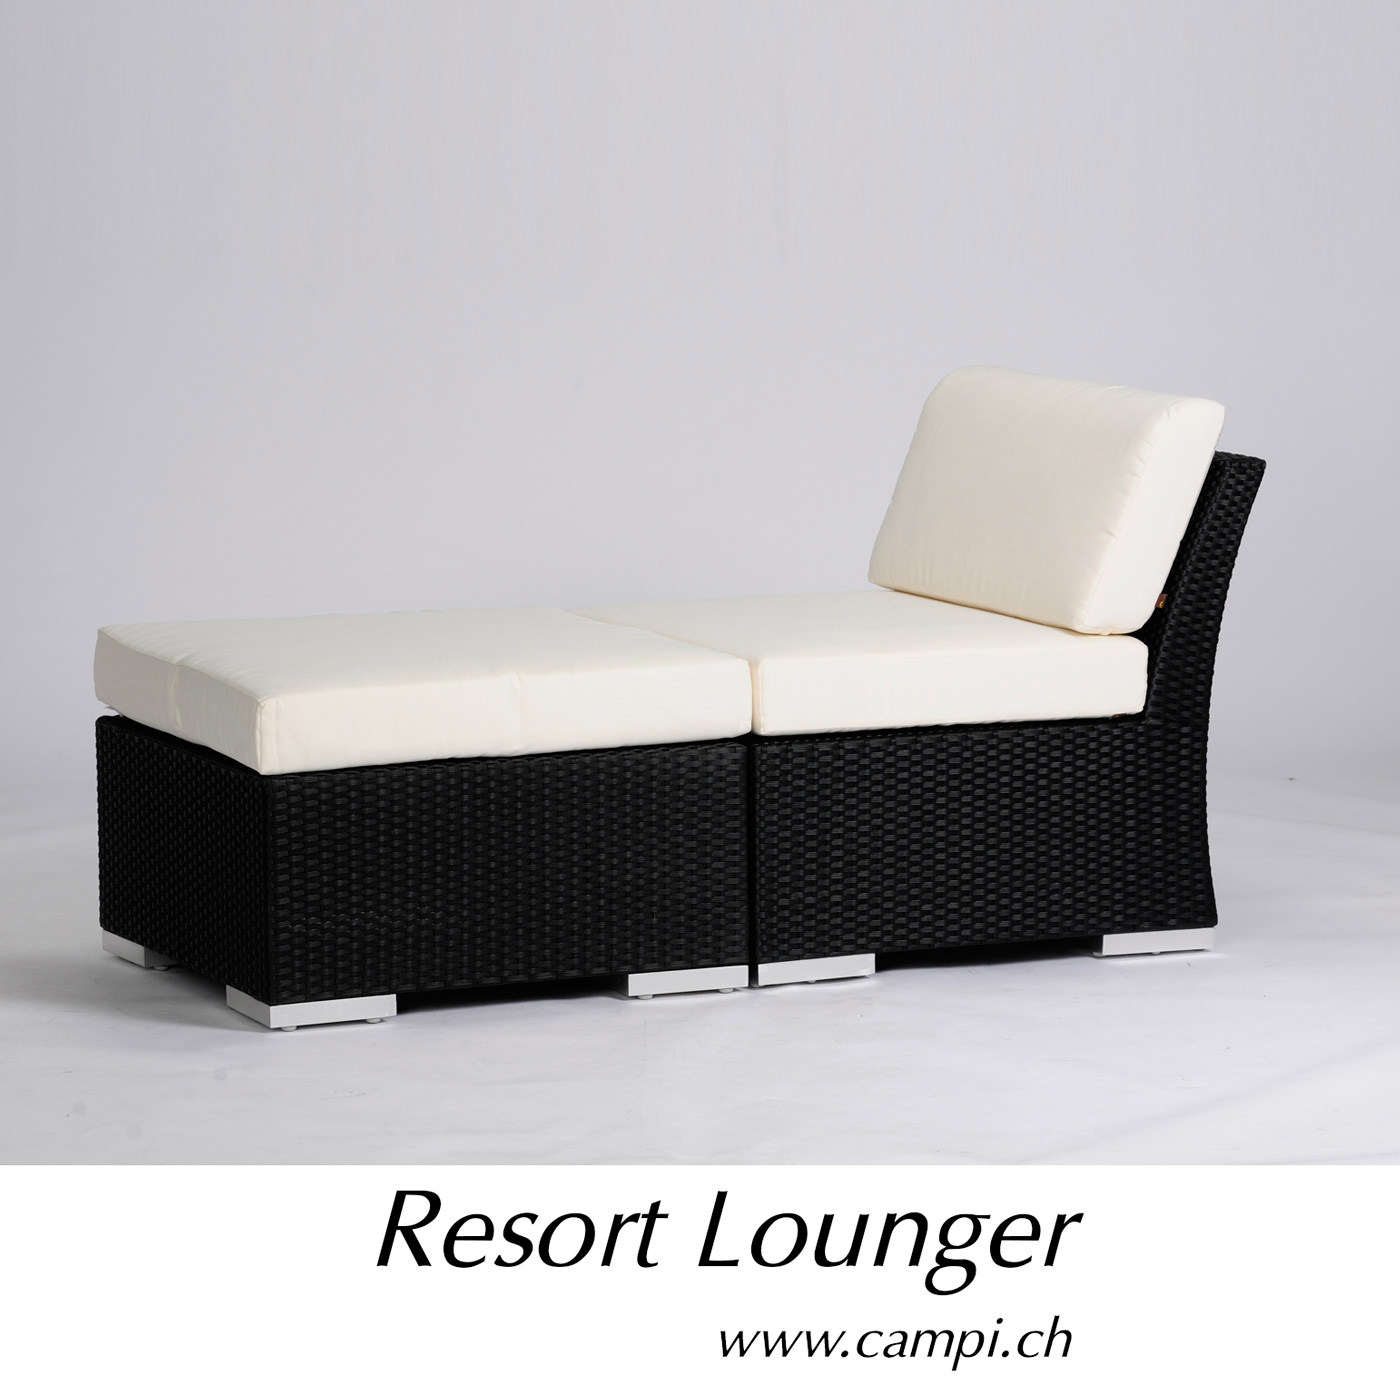 Resort Lounger 150 x 70 x 69 Polyrattan